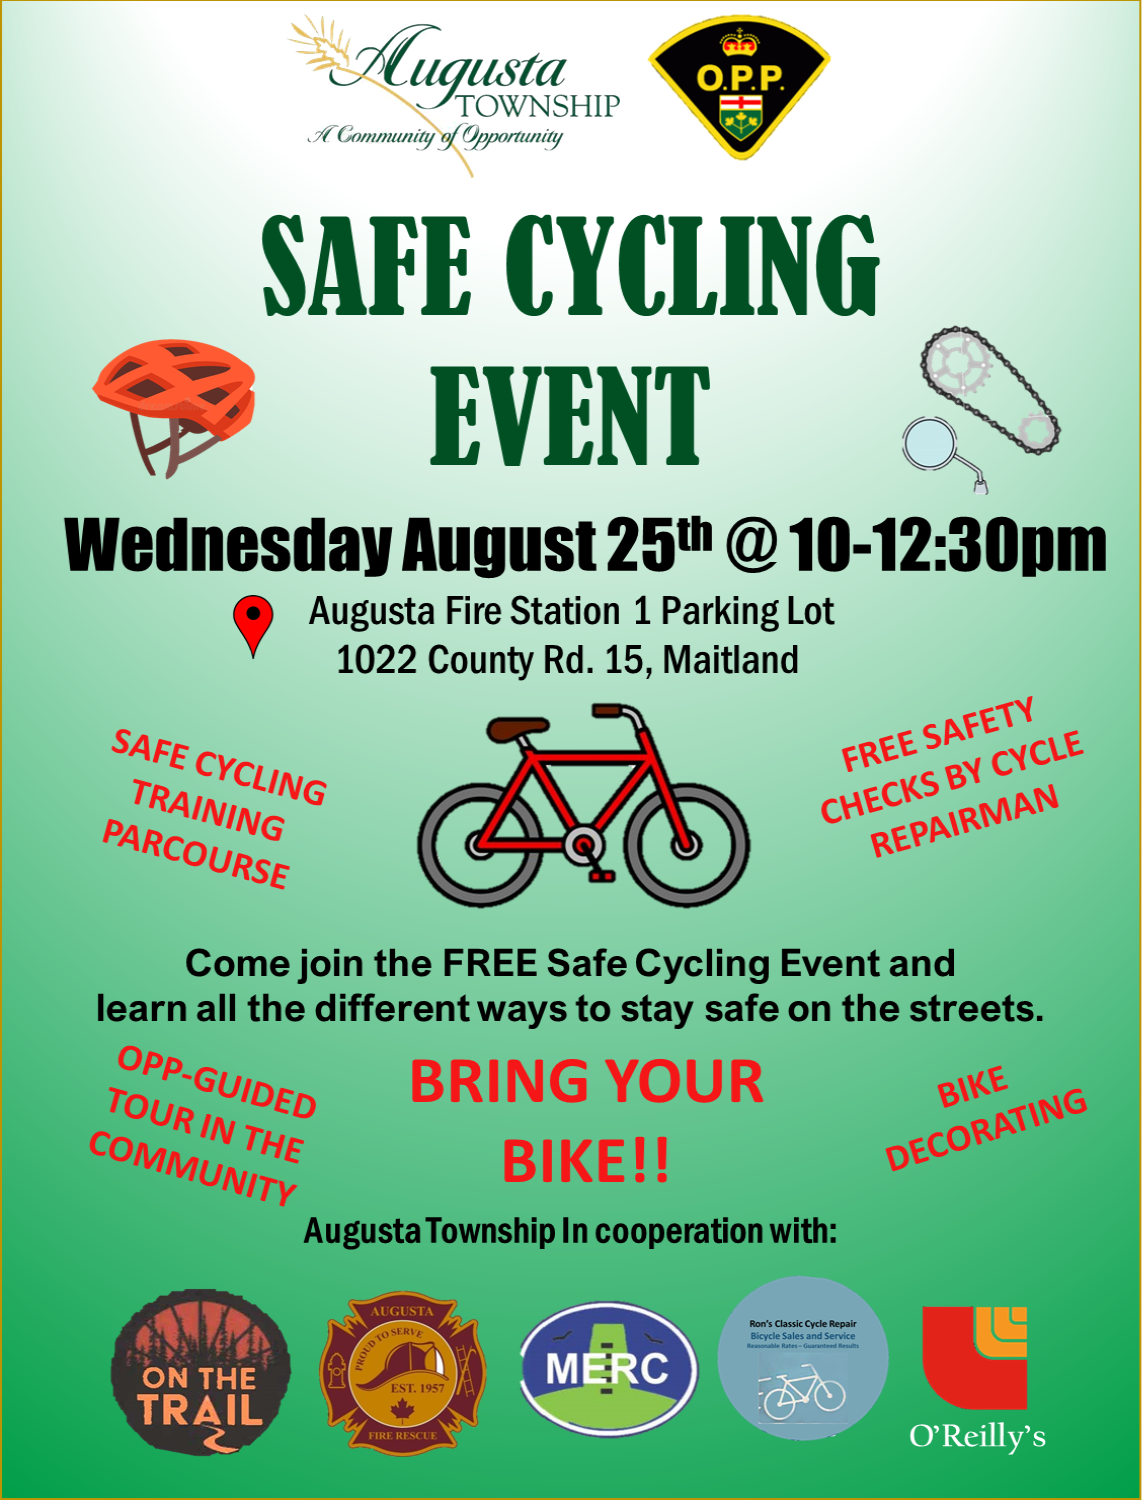 safe cycling event. wednesday august 28. 10-12:30 pm. augusta fire station 1 parking lot. 1022 county road 15, maitland. bring your bike.